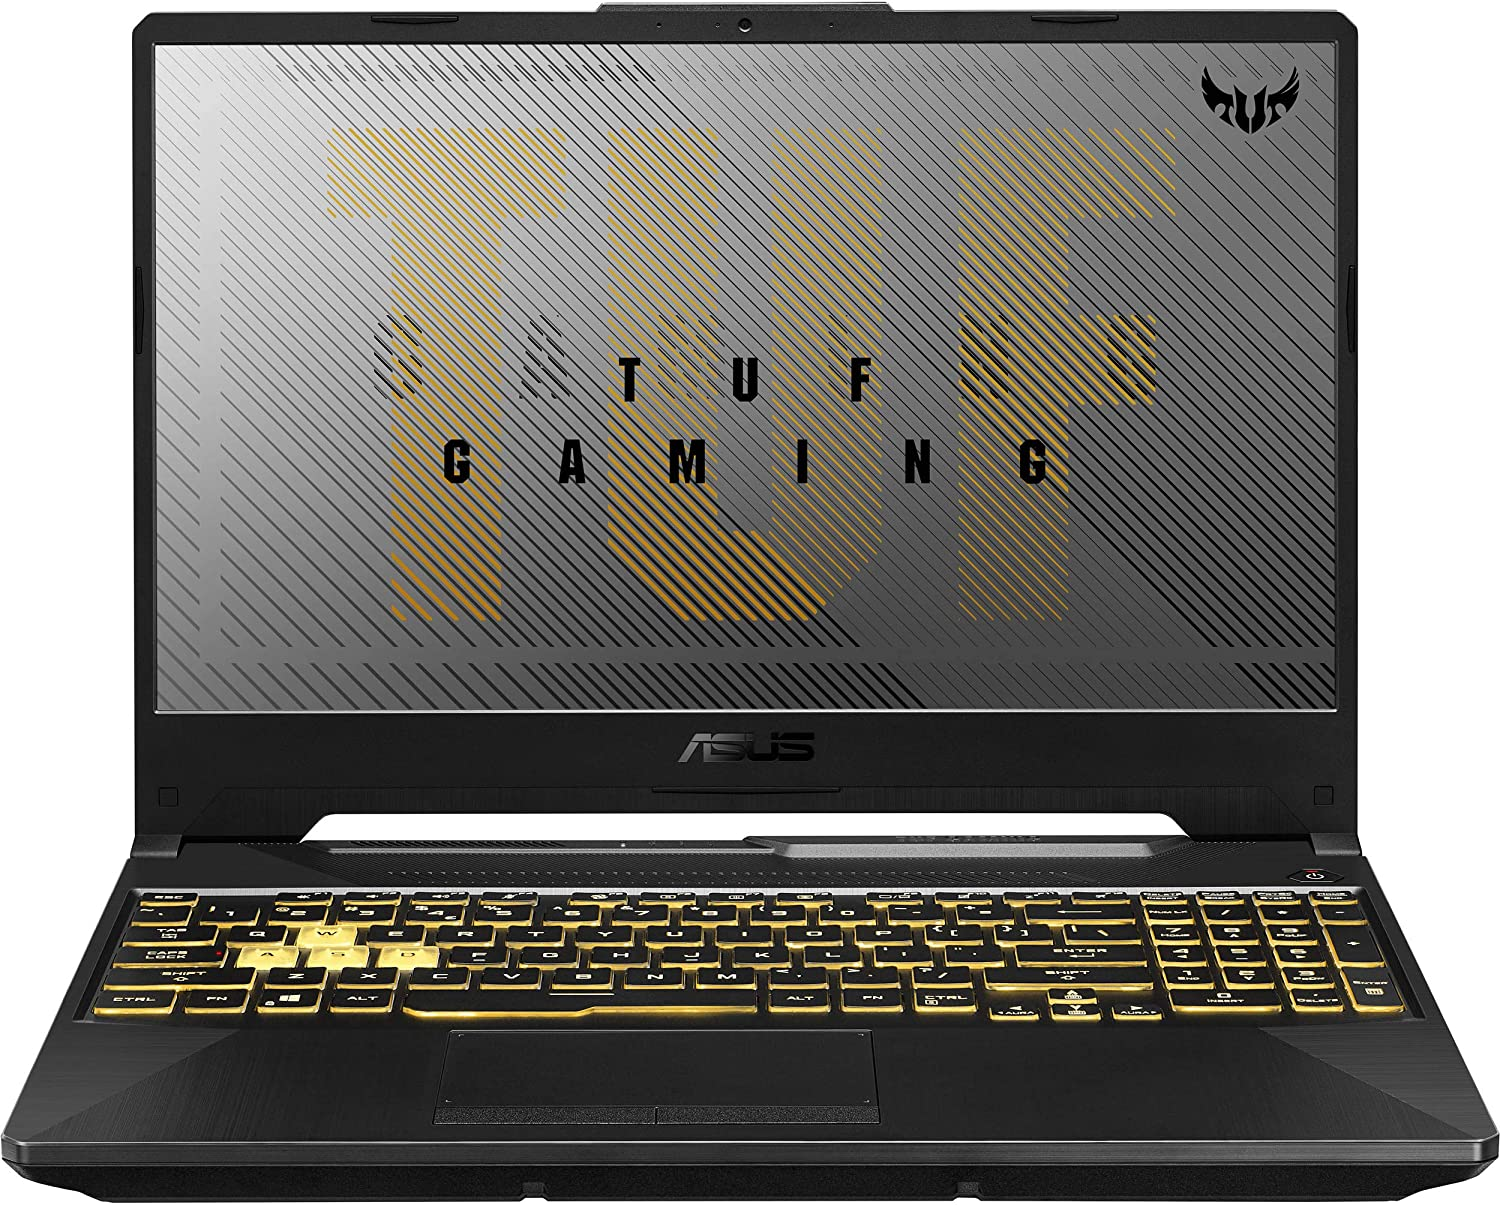 "ASUS TUF VR Ready Gaming Laptop, 15.6"" IPS FHD, AMD Ryzen 7-4800H Octa-Core up to 4.20 GHz, NVIDIA RTX 2060, 16GB RAM, 512GB SSD+1TB HDD, RGB Backlit KB, RJ-45 Ethernet, Win 10"